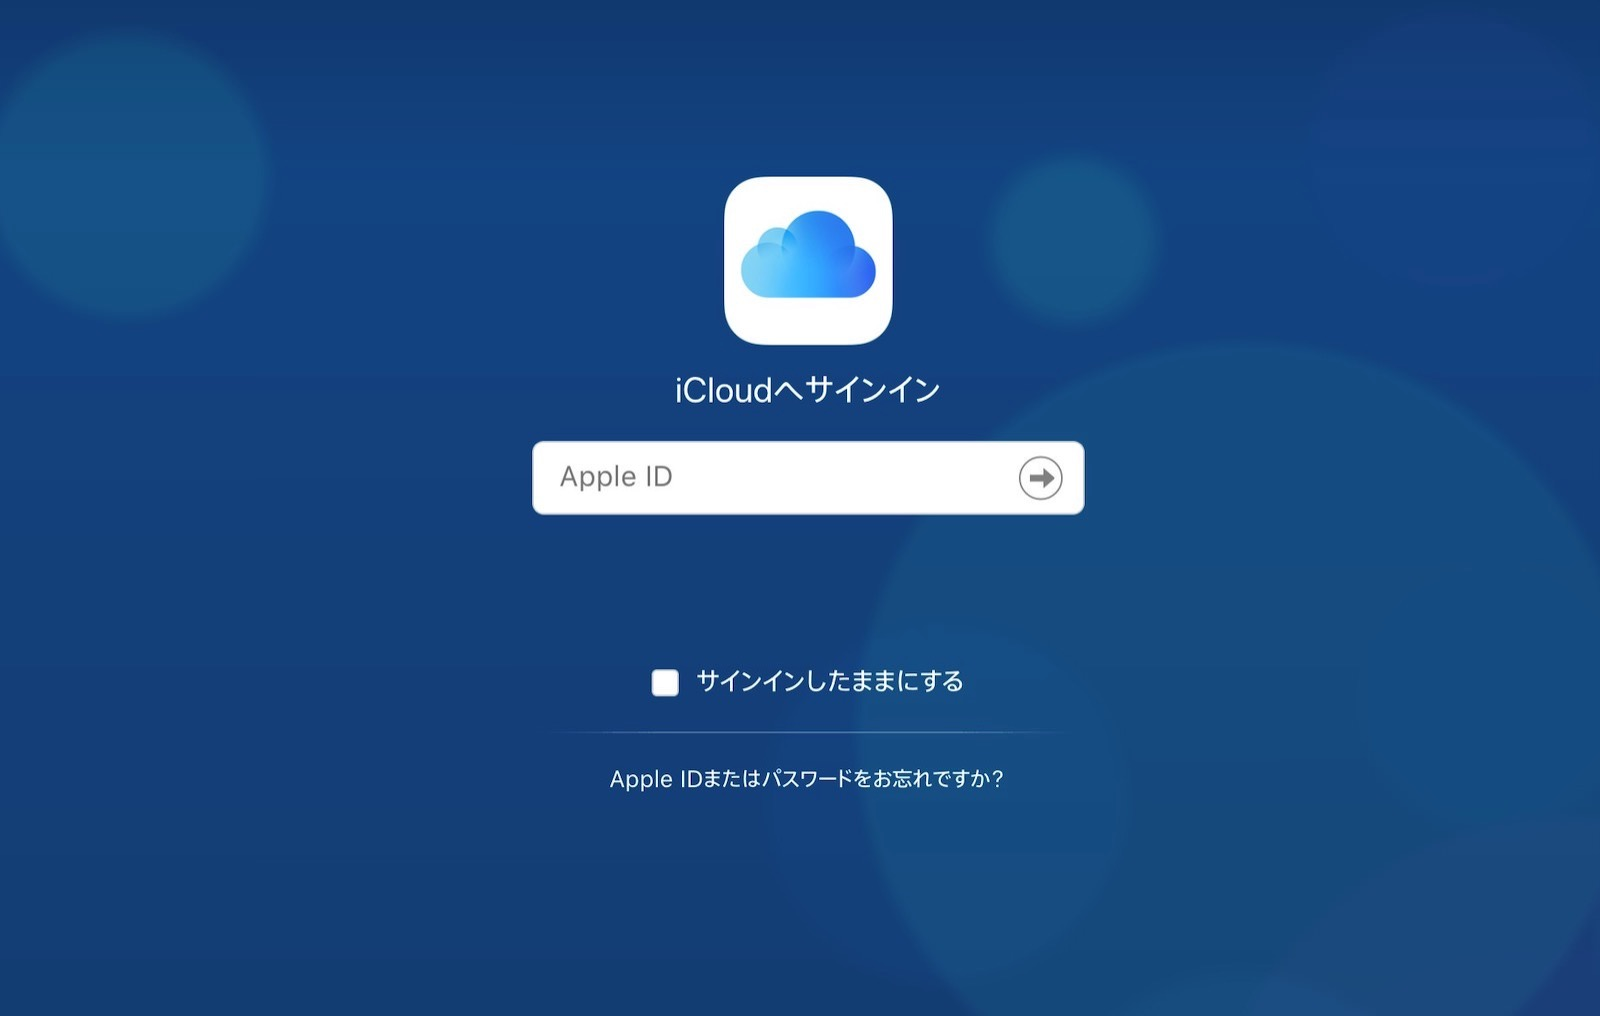 ICloud sign in web